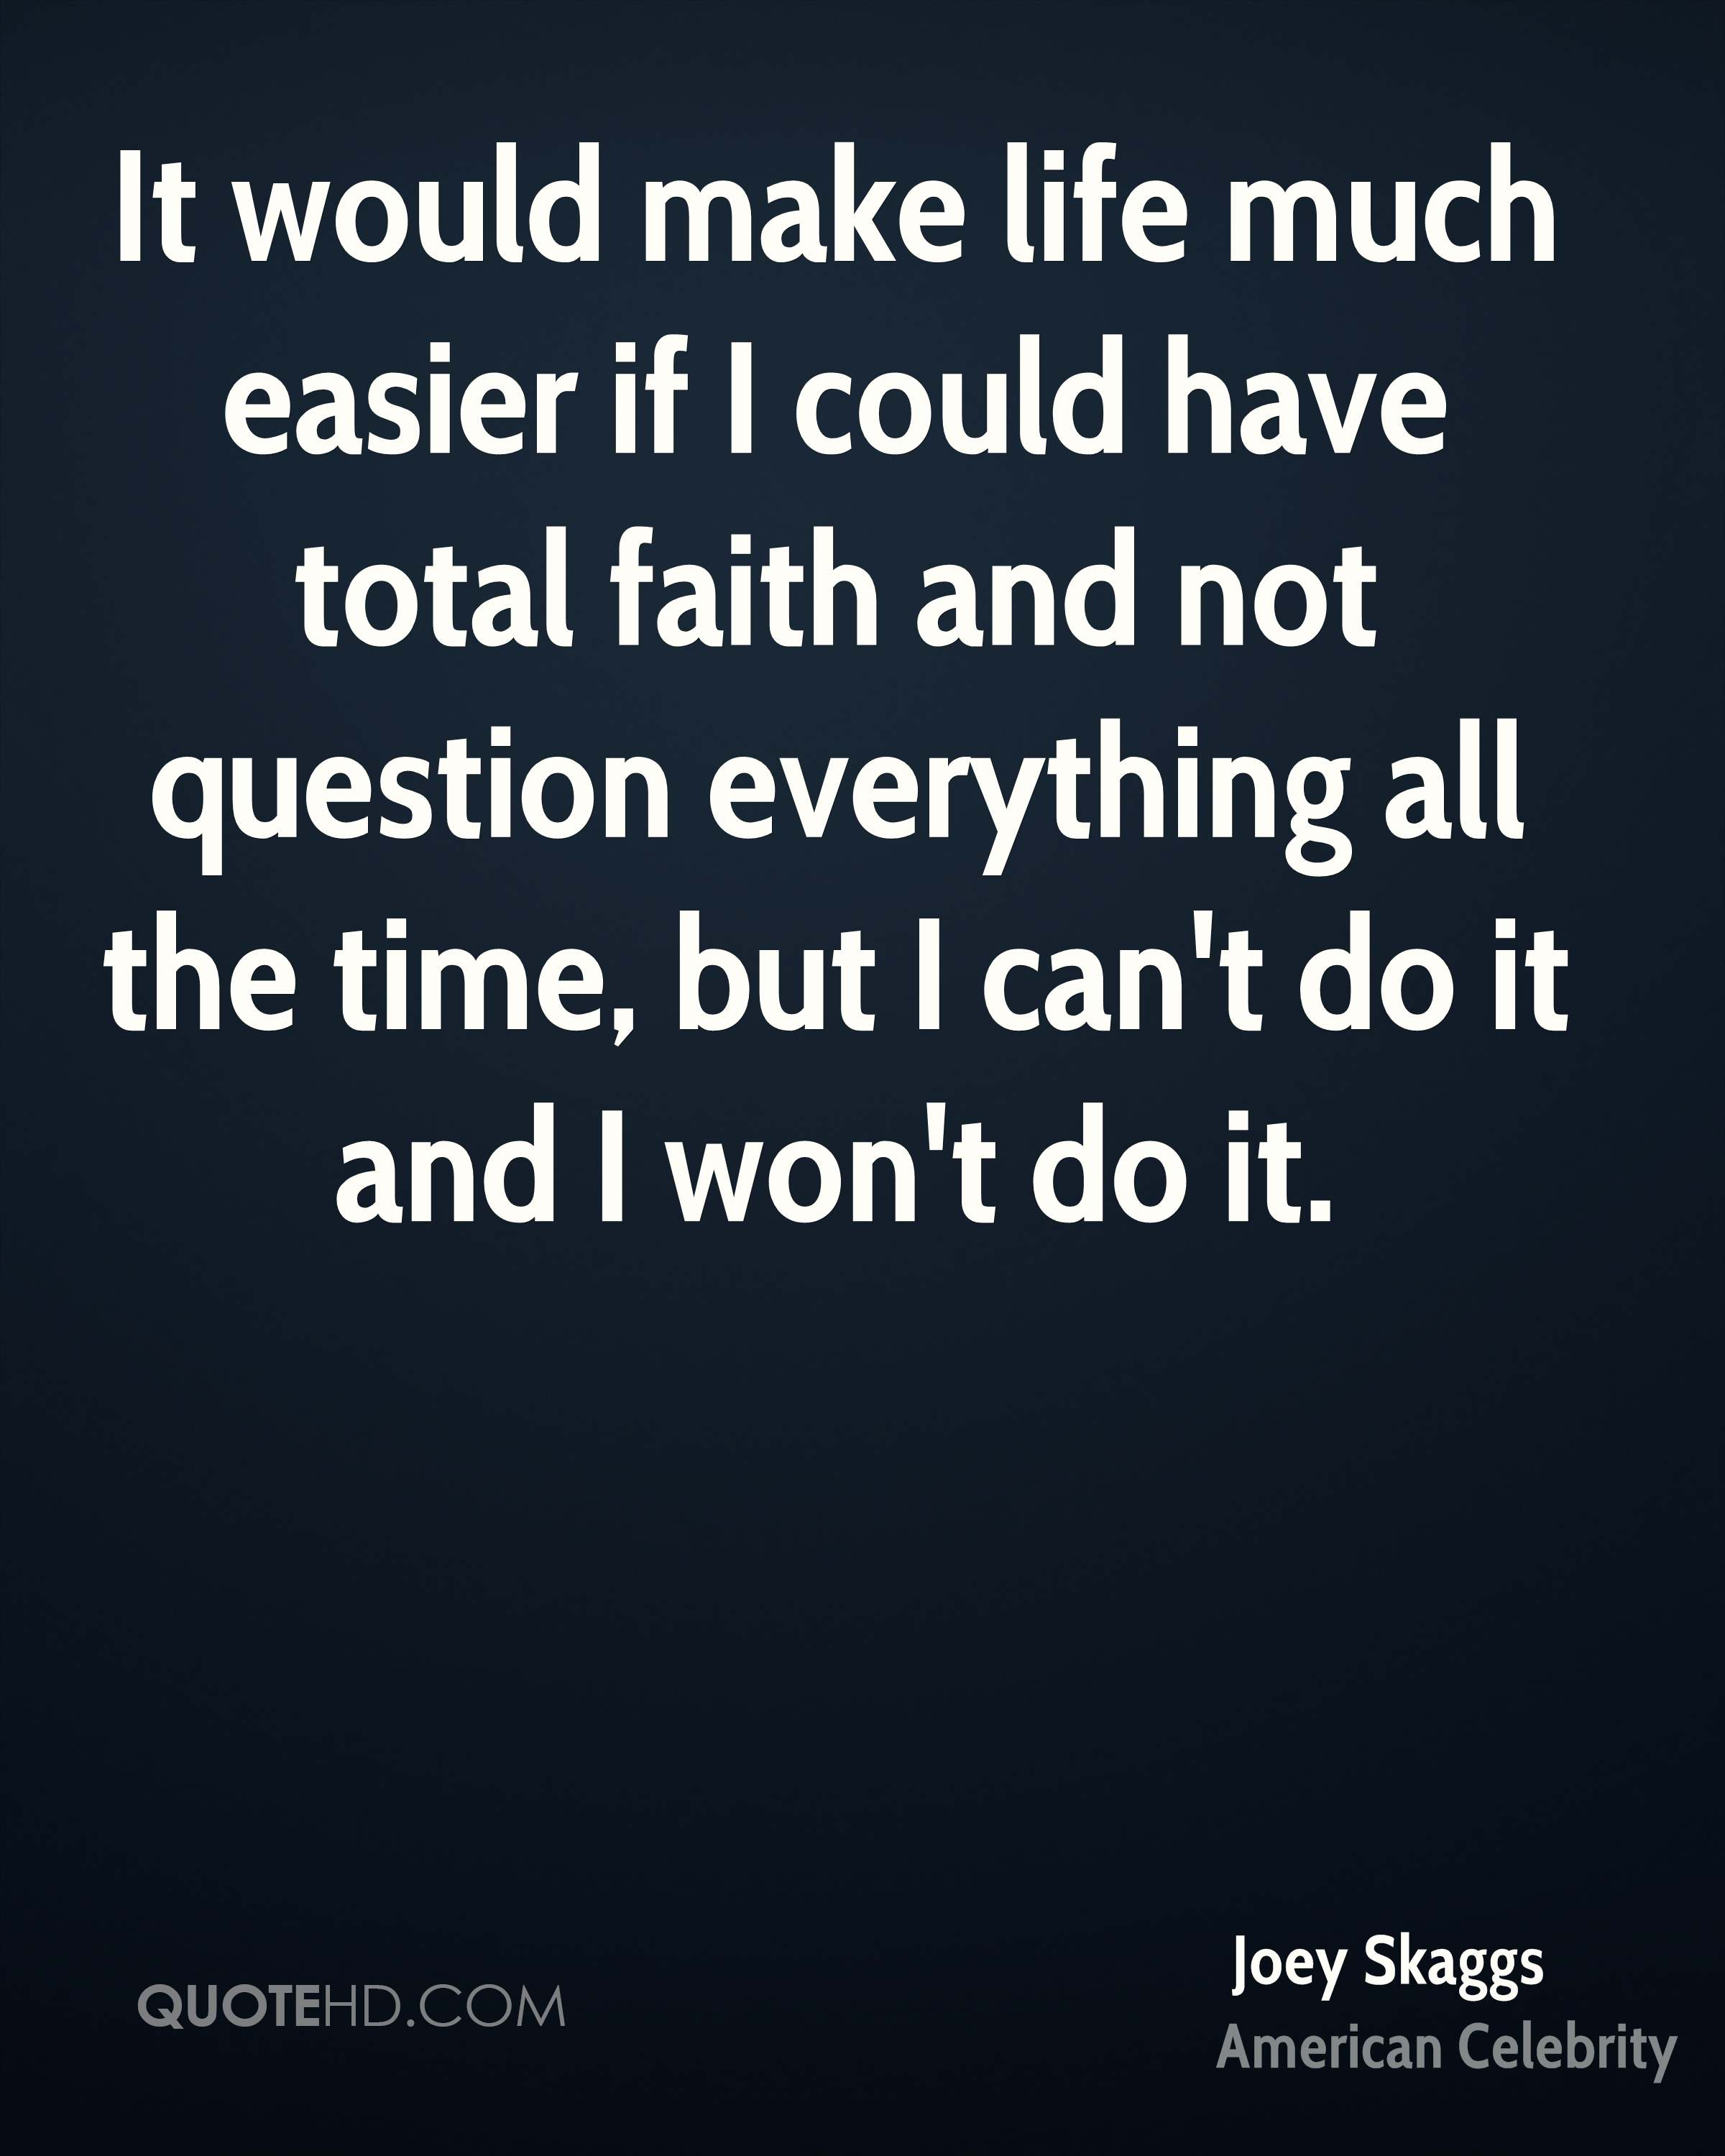 It would make life much easier if I could have total faith and not question everything all the time, but I can't do it and I won't do it.